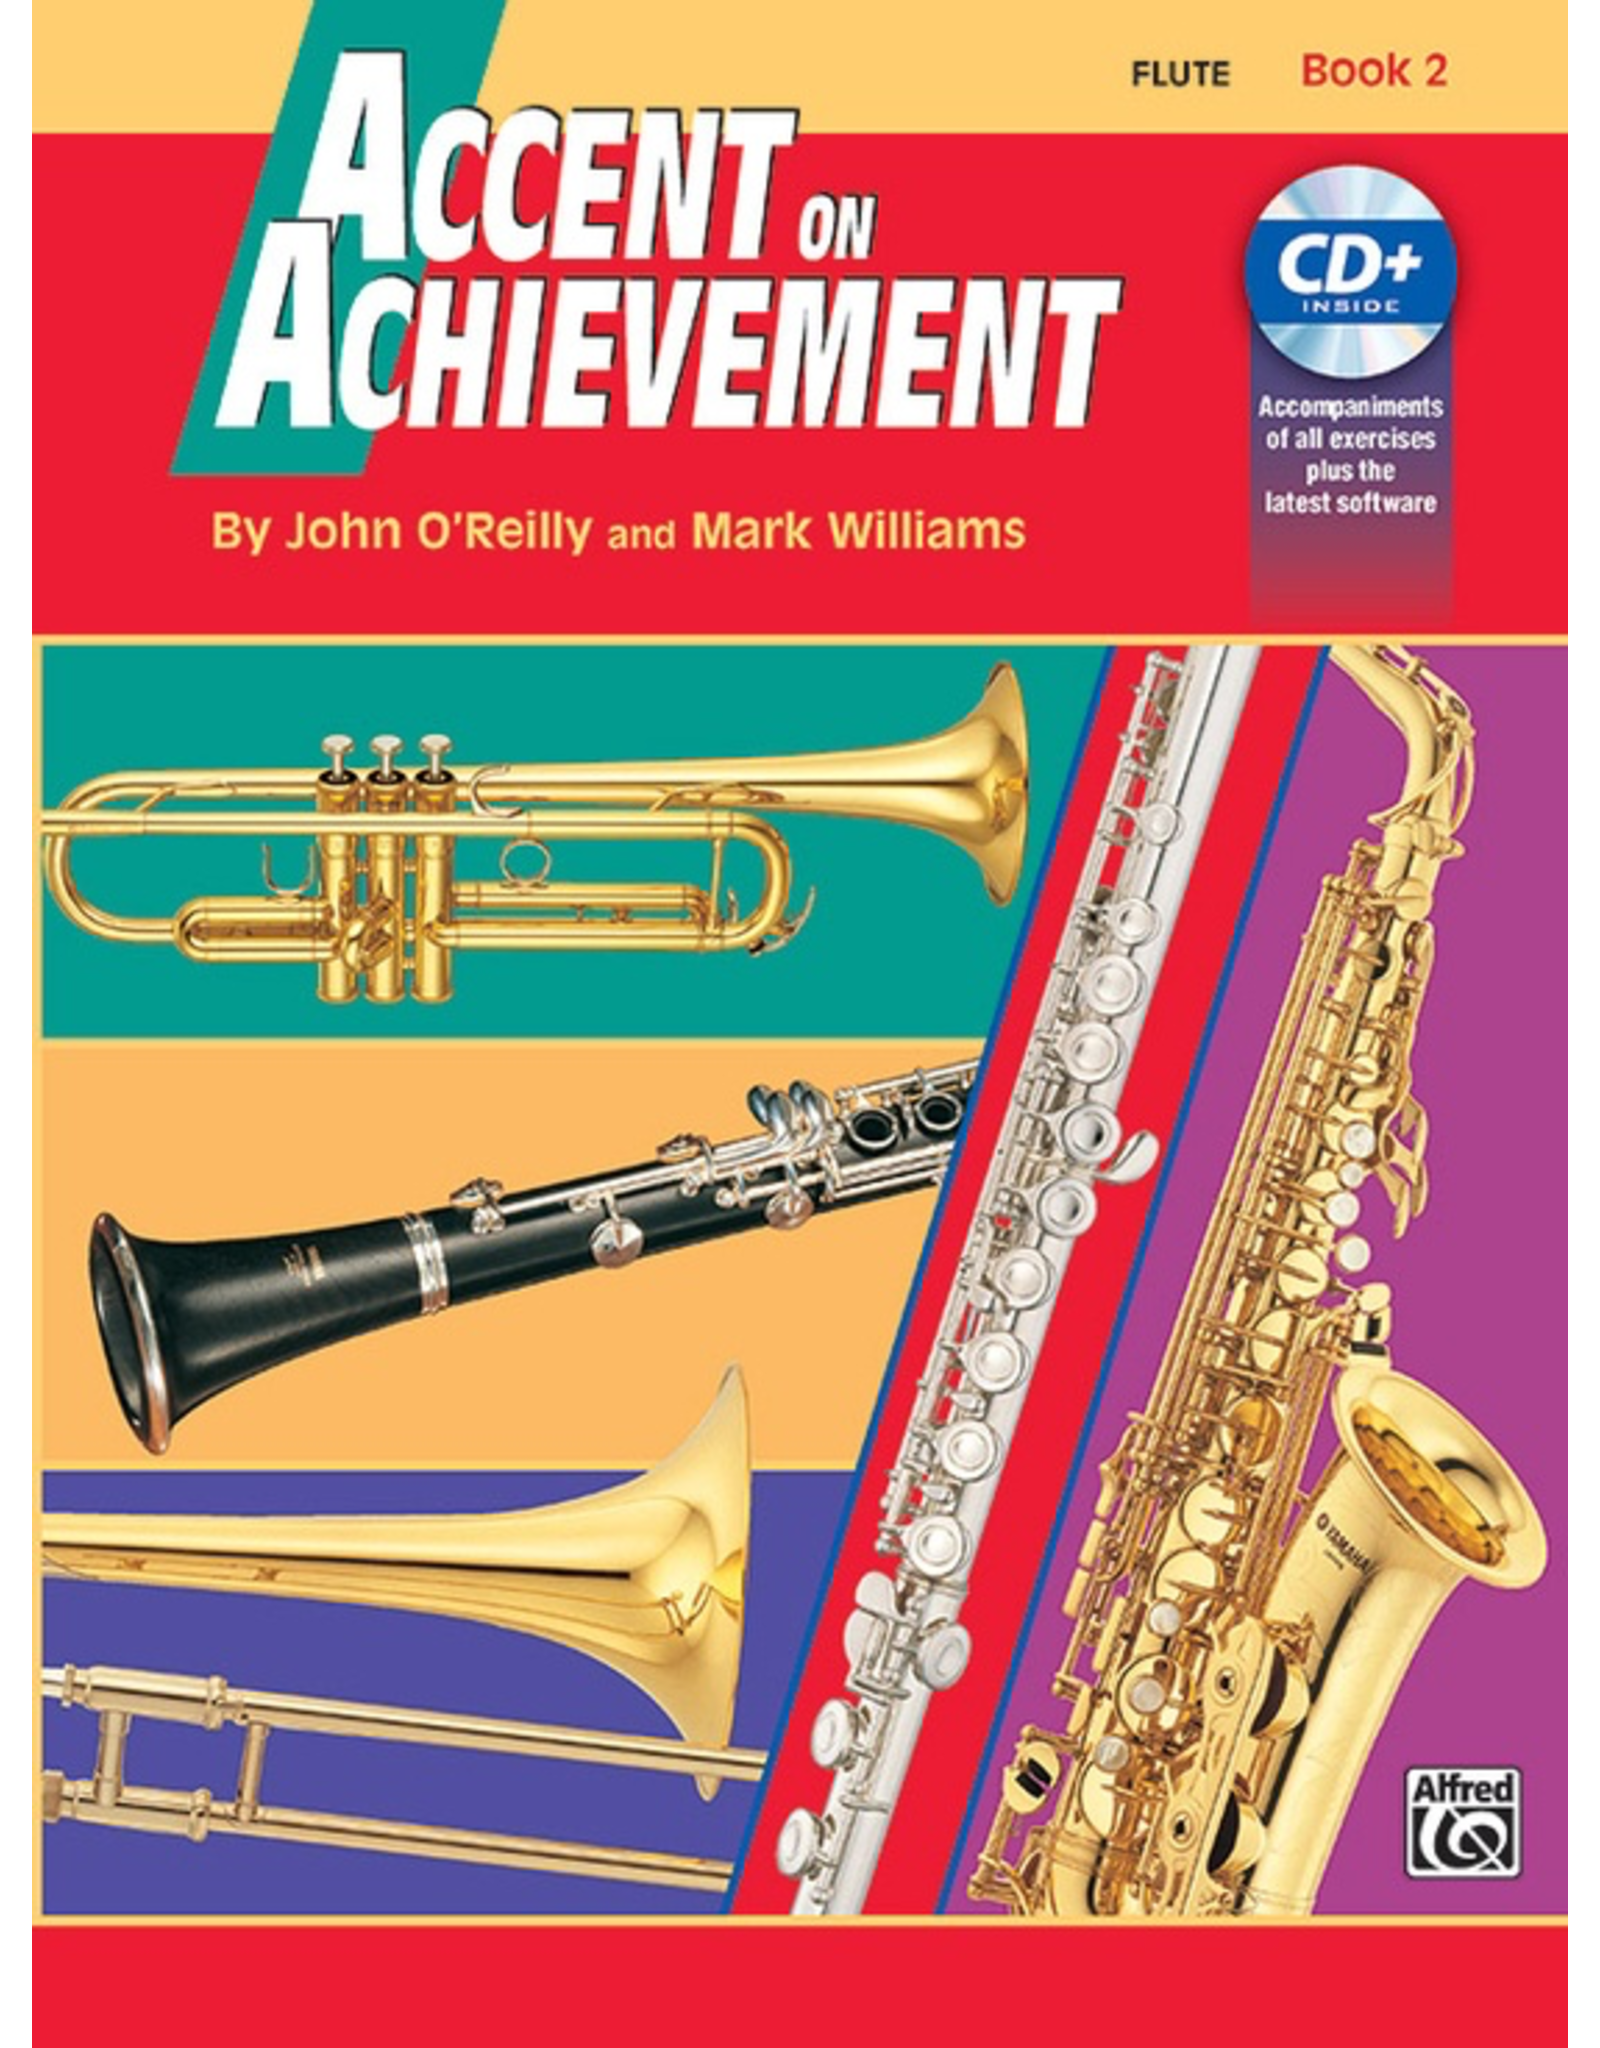 Alfred Accent on Achievement Book 2 with CD, Flute